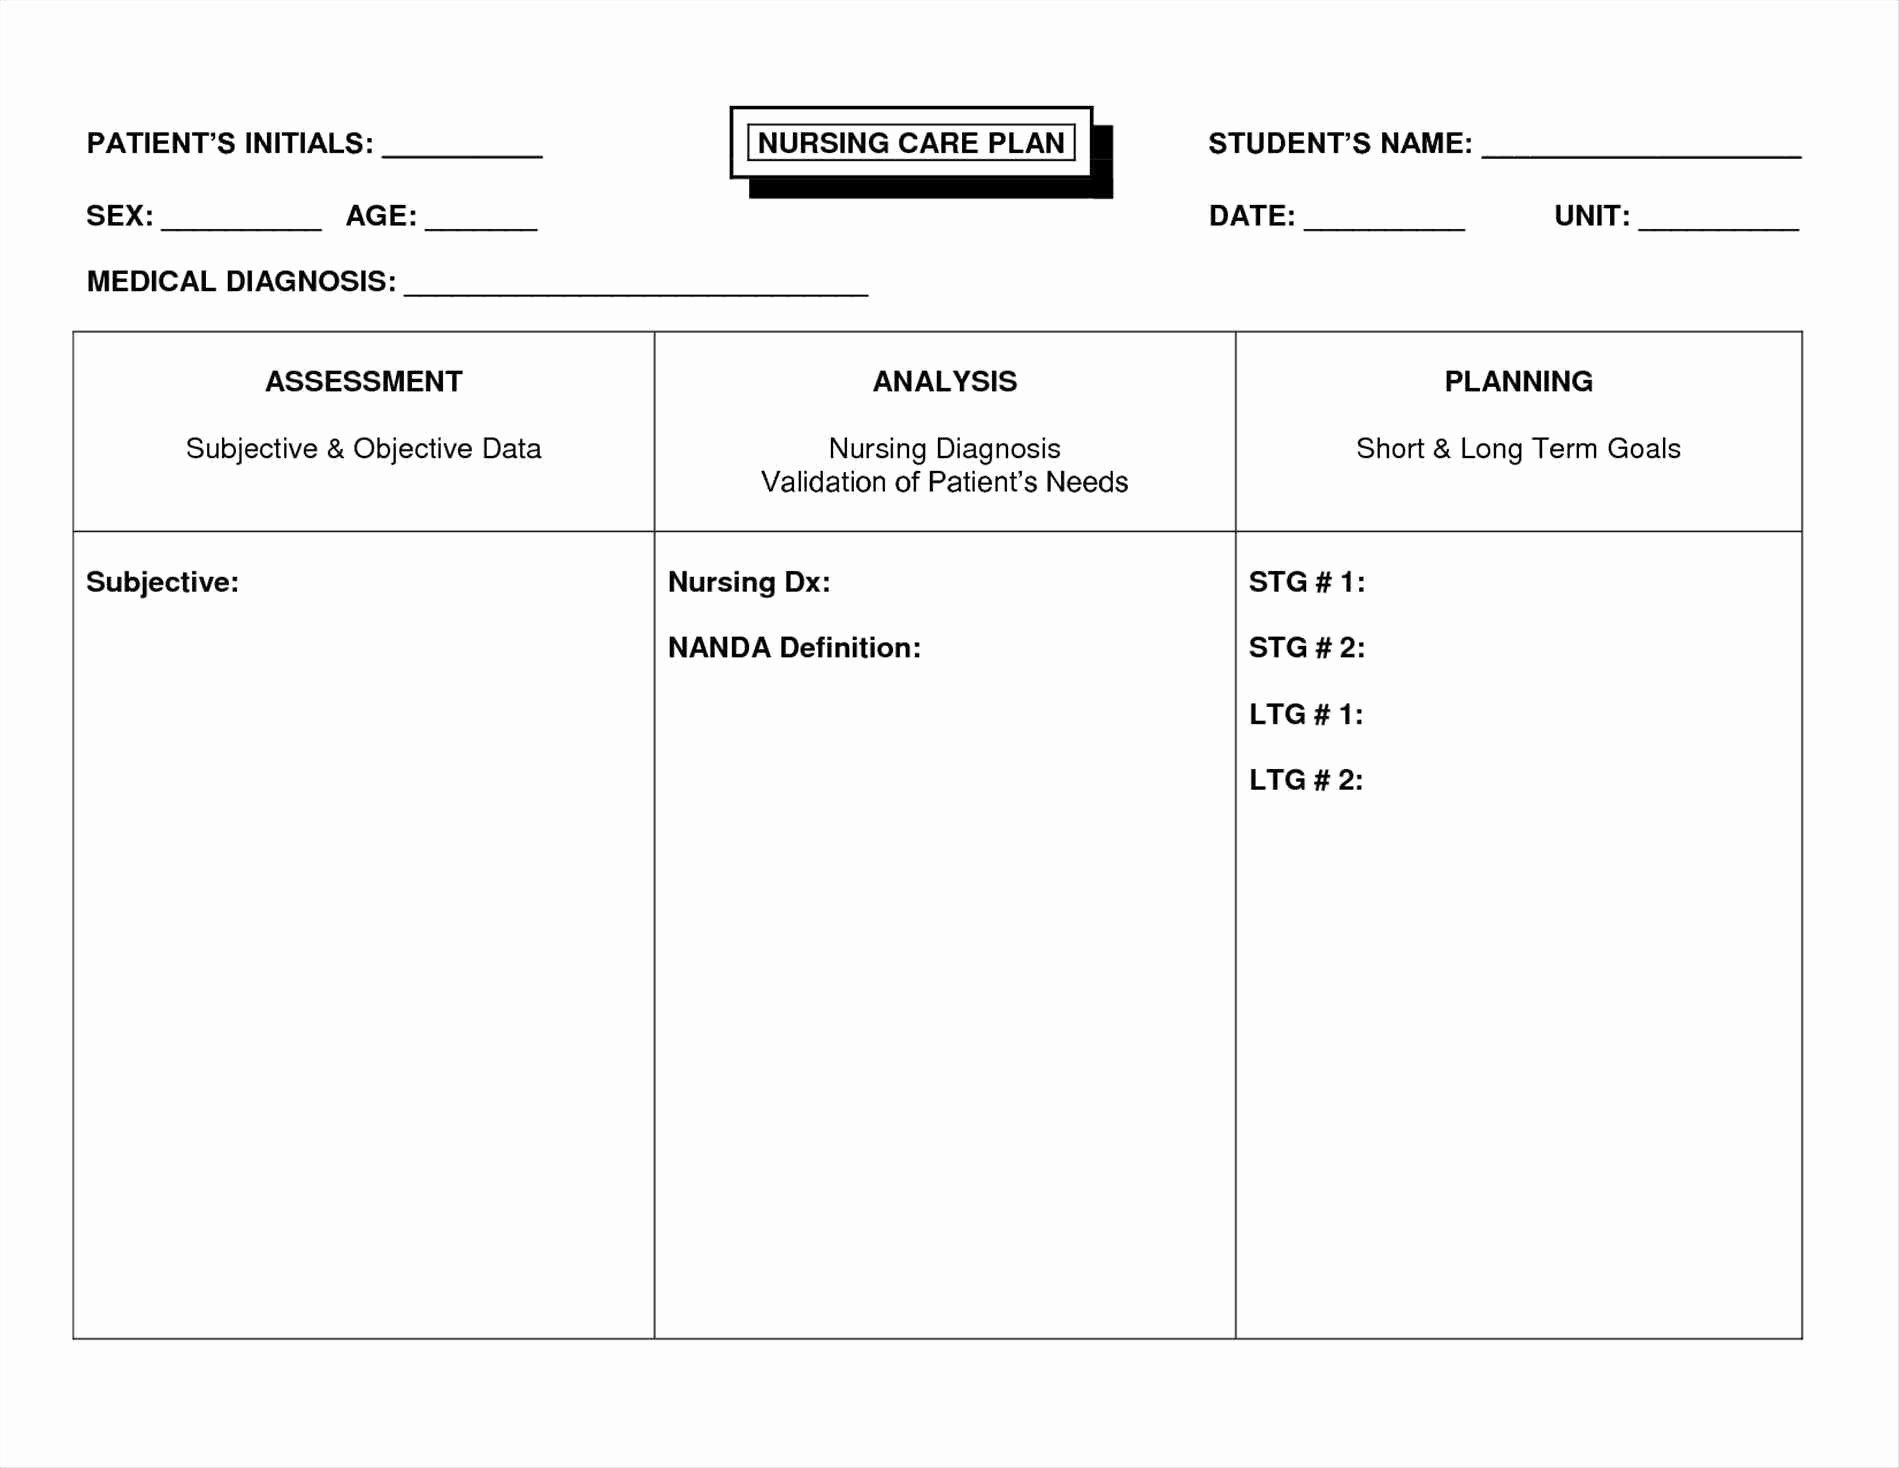 Self Care Plan Template Inspirational Free Nursing Care Plan Templates Beepmunk